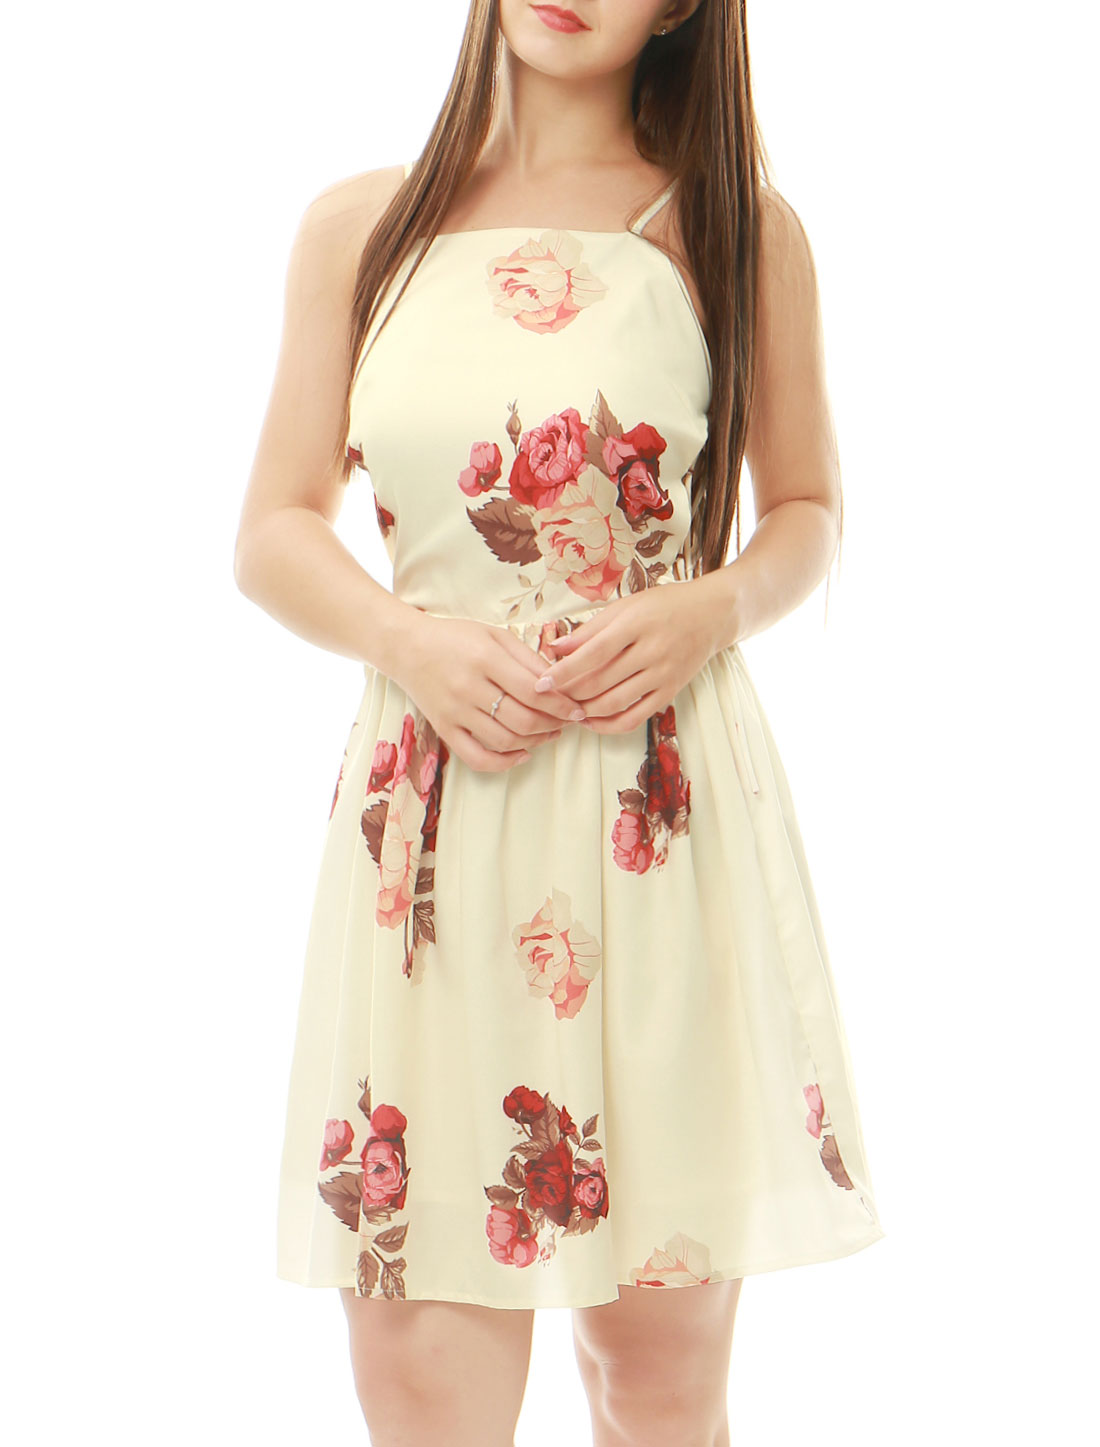 Women Floral Prints Sleeveless Tie Side A Line Dress Beige S